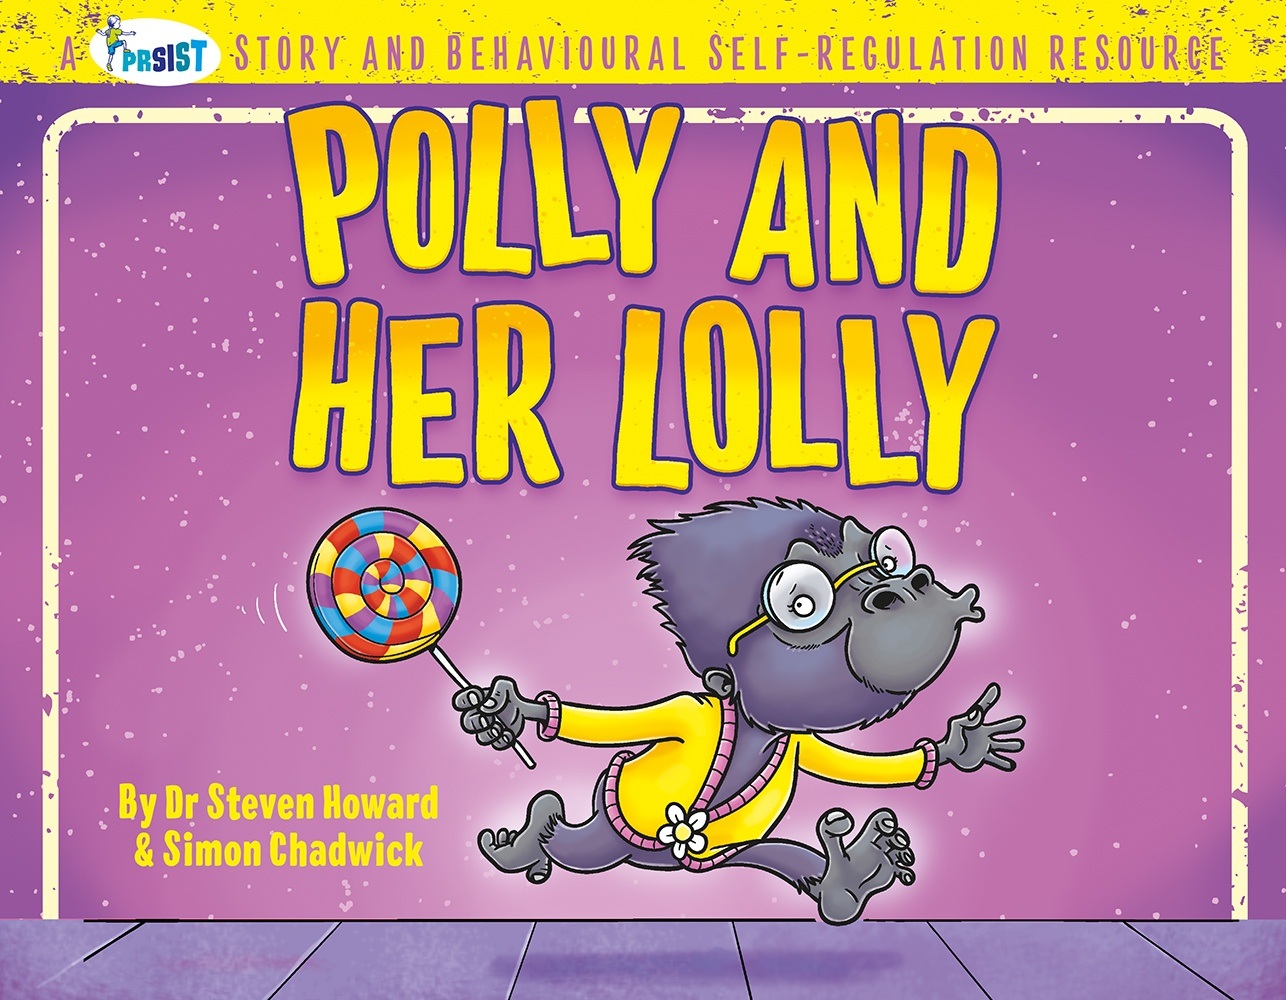 Cover of Polly And Her Lolly from Ceratopia Books, a PRSIST book